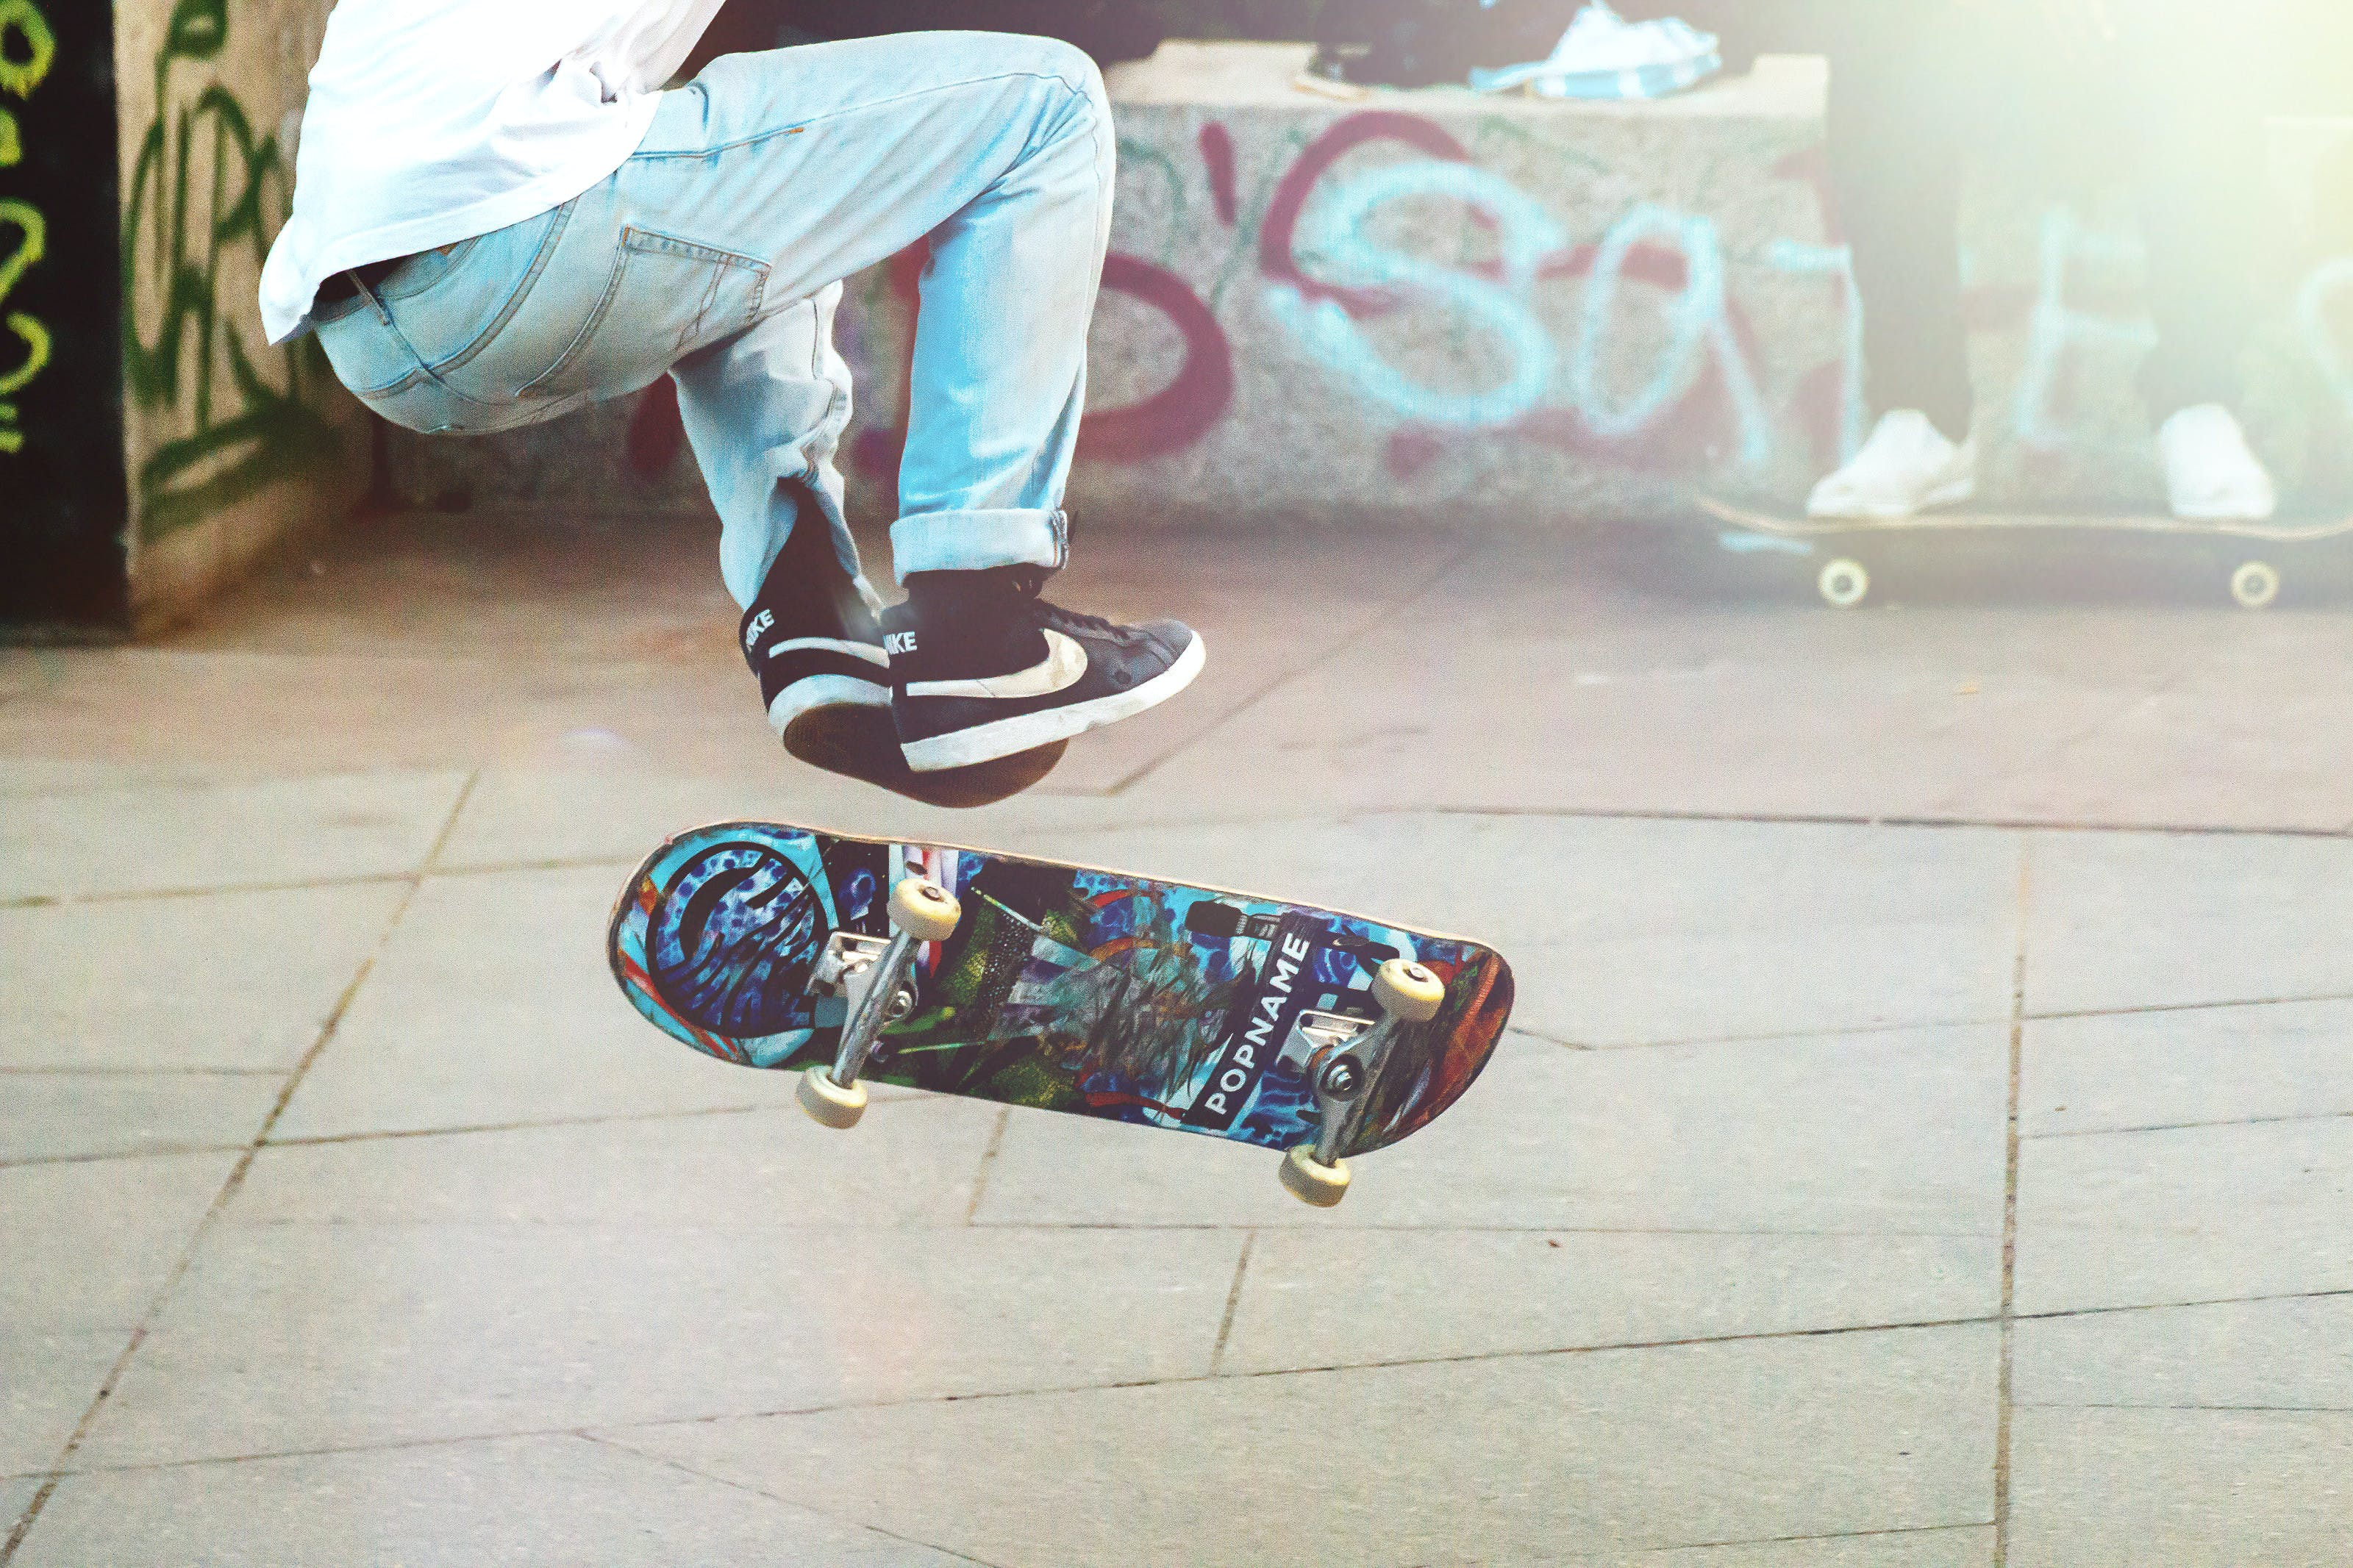 Person Performing Skateboard Tricks